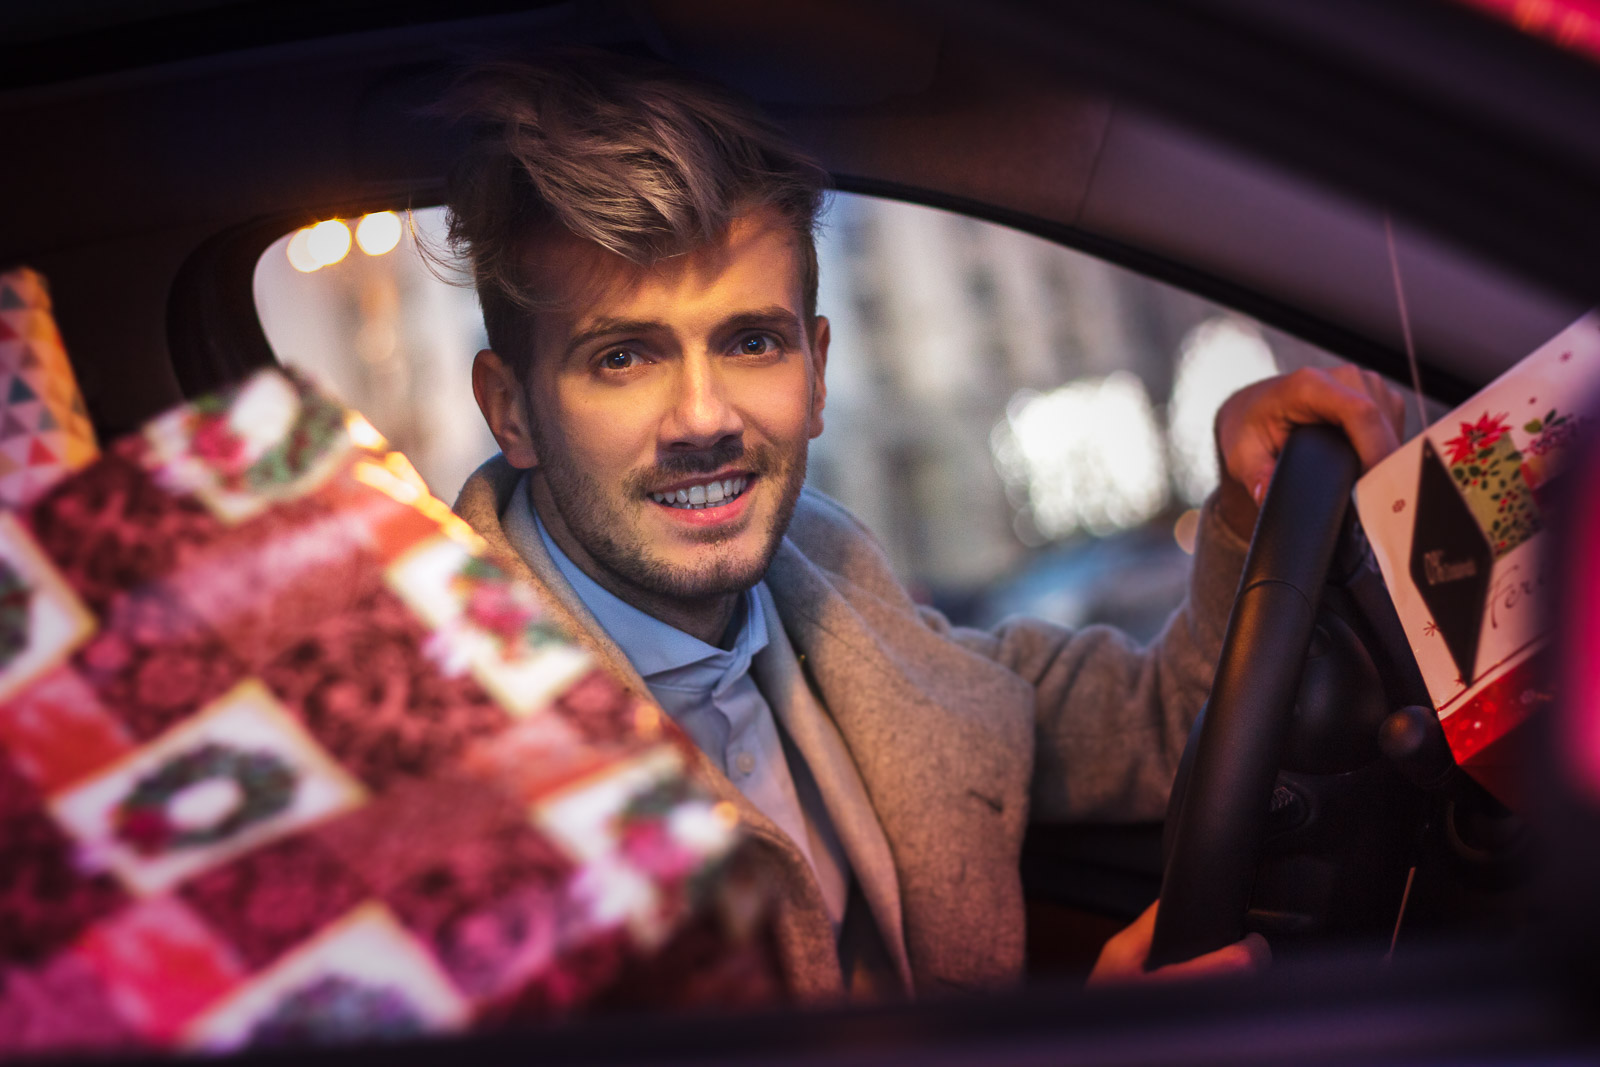 FashionJumper-Christmas-Car09